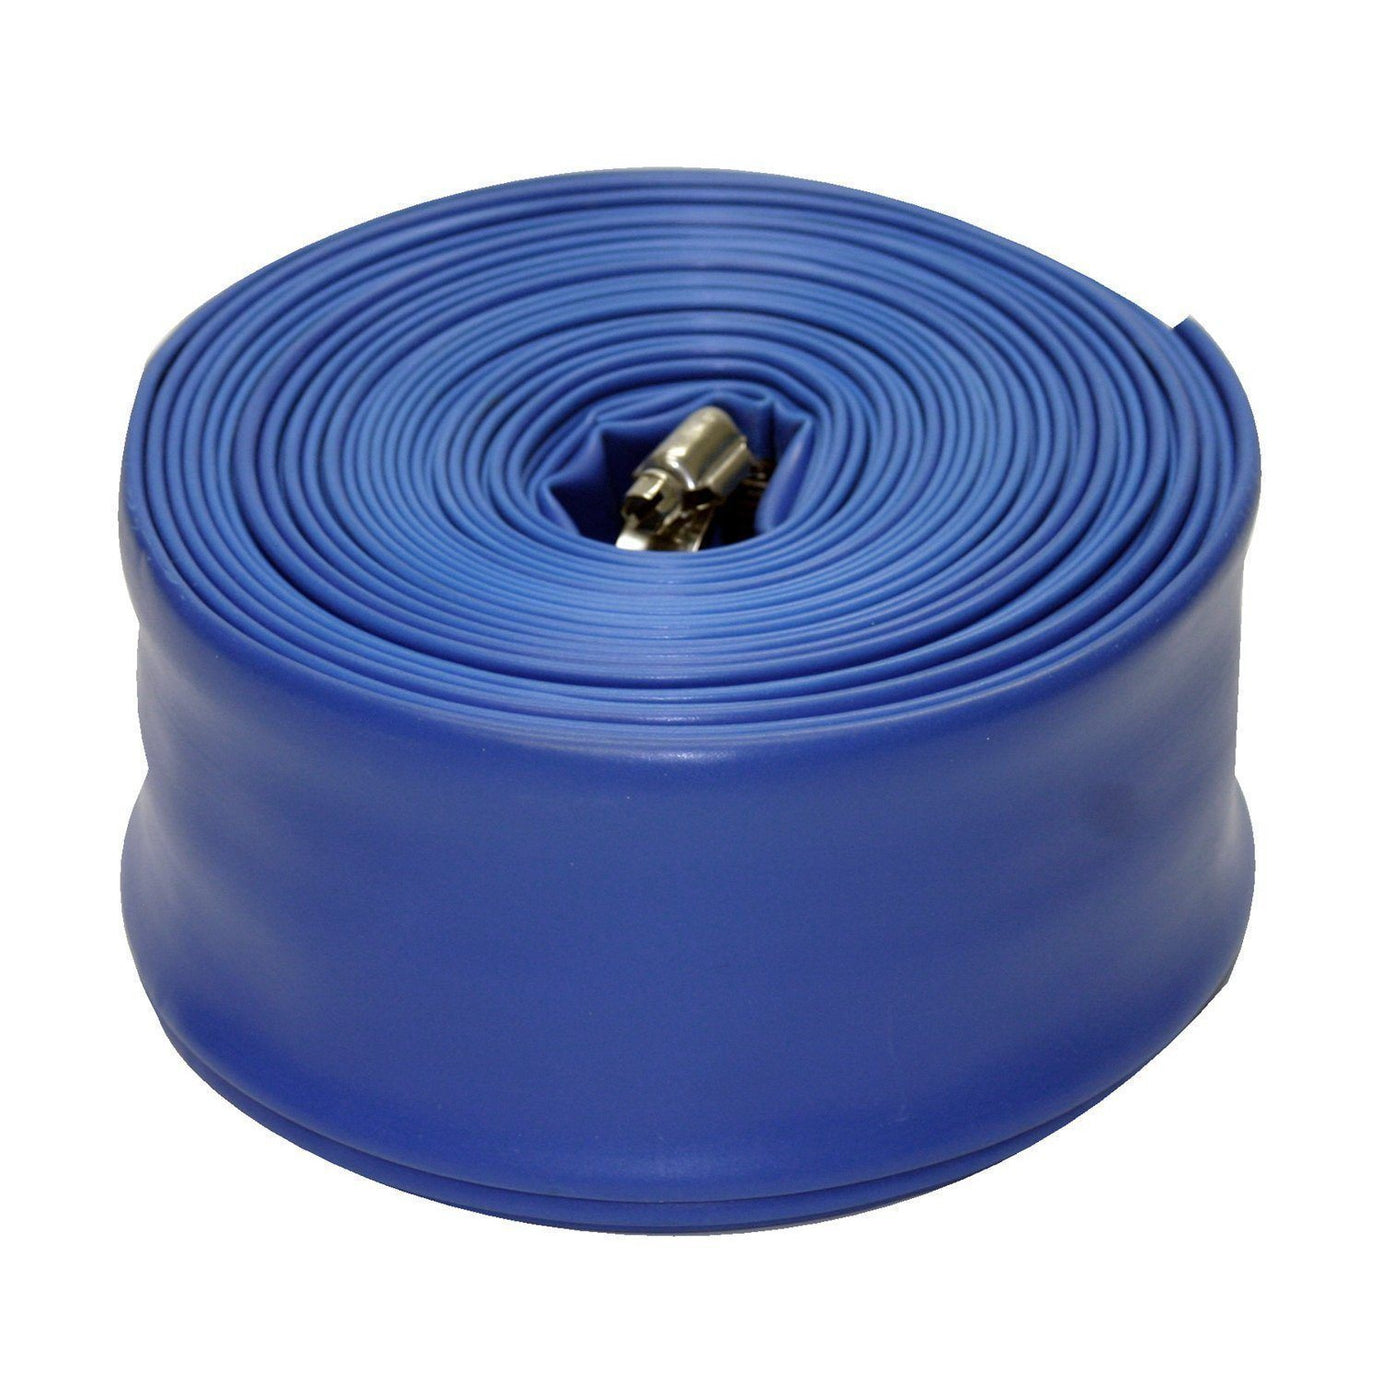 Blue devil Pool Equipment Pool Store Canada Blue Devil Back Wash Hose 1 1/2 x 100ft - Pool Store Canada